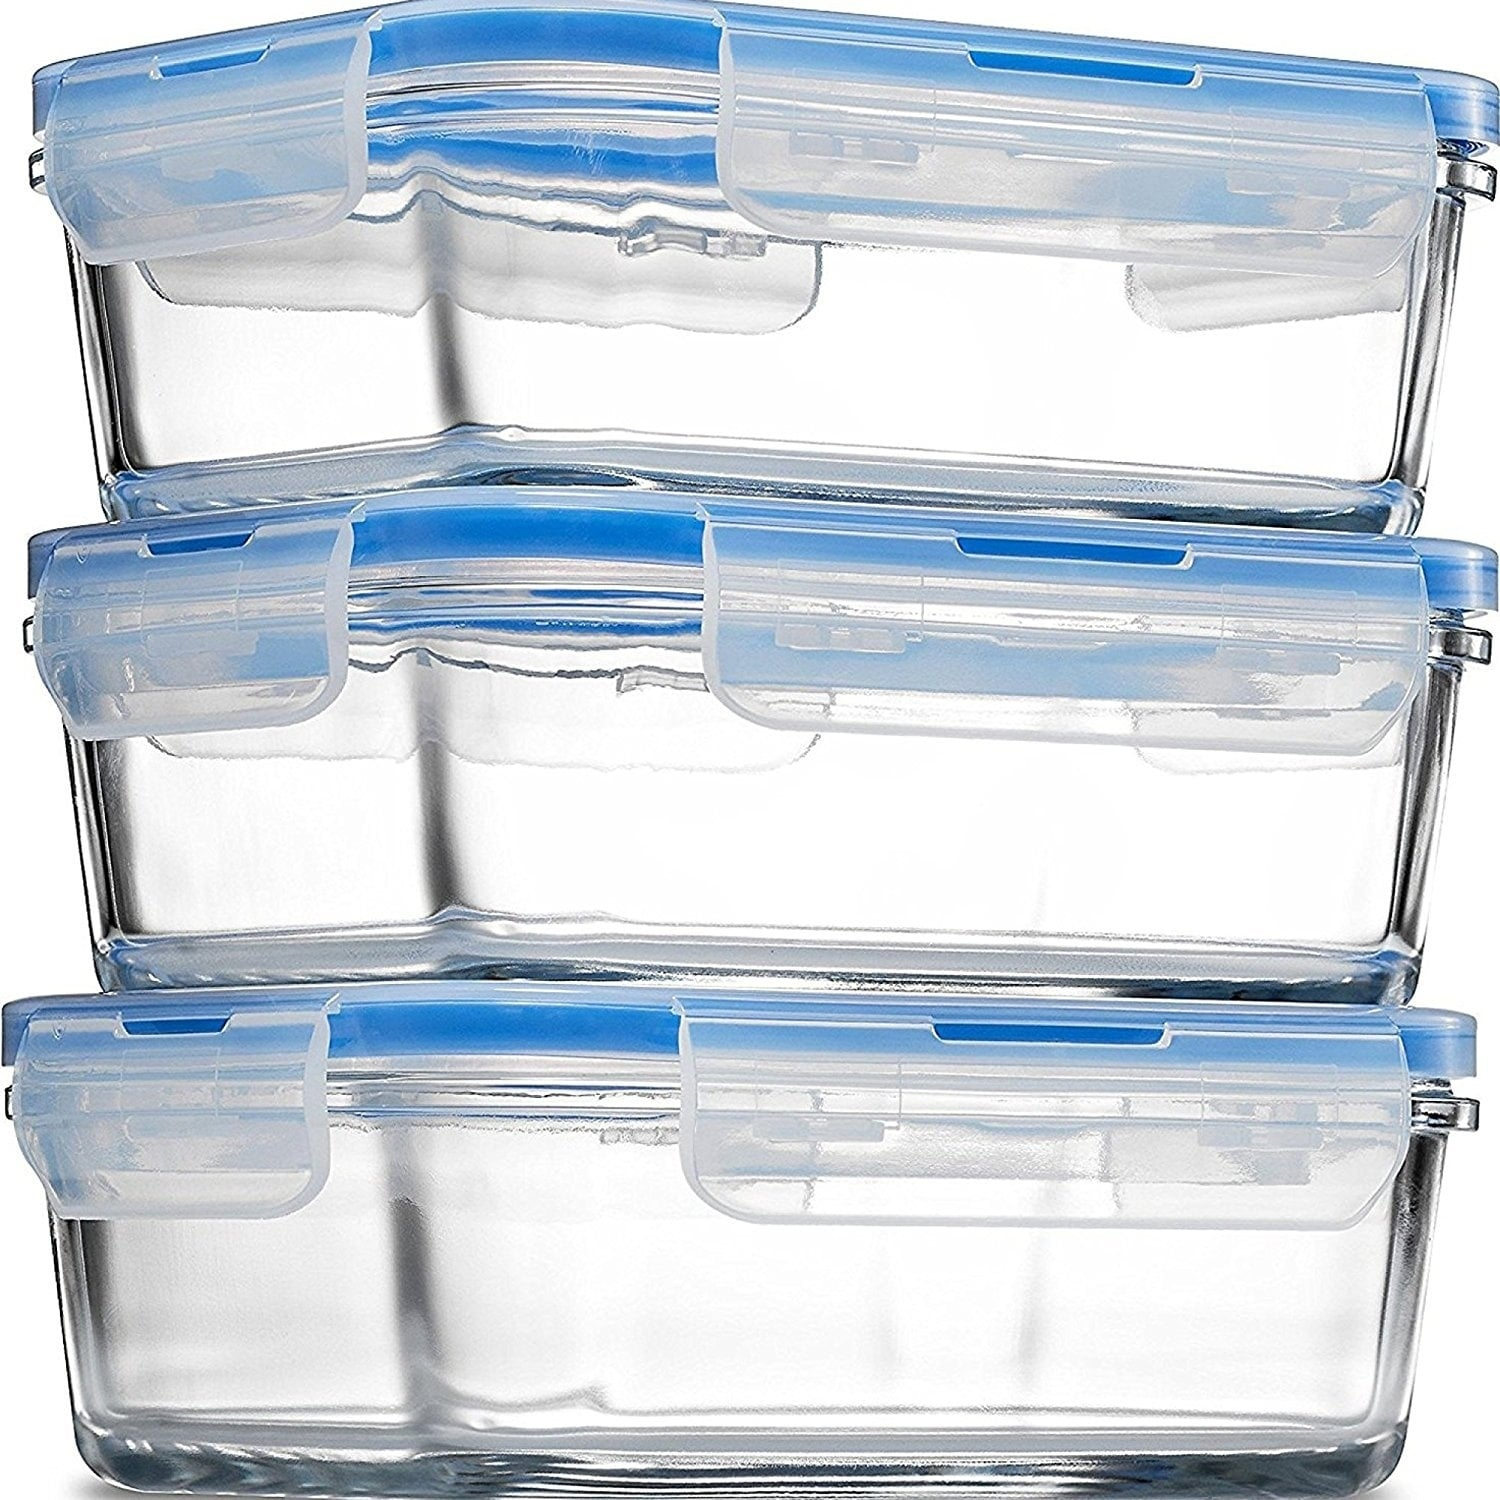 Shop Glass Meal Prep Food Storage Containers Superior Borosilicate